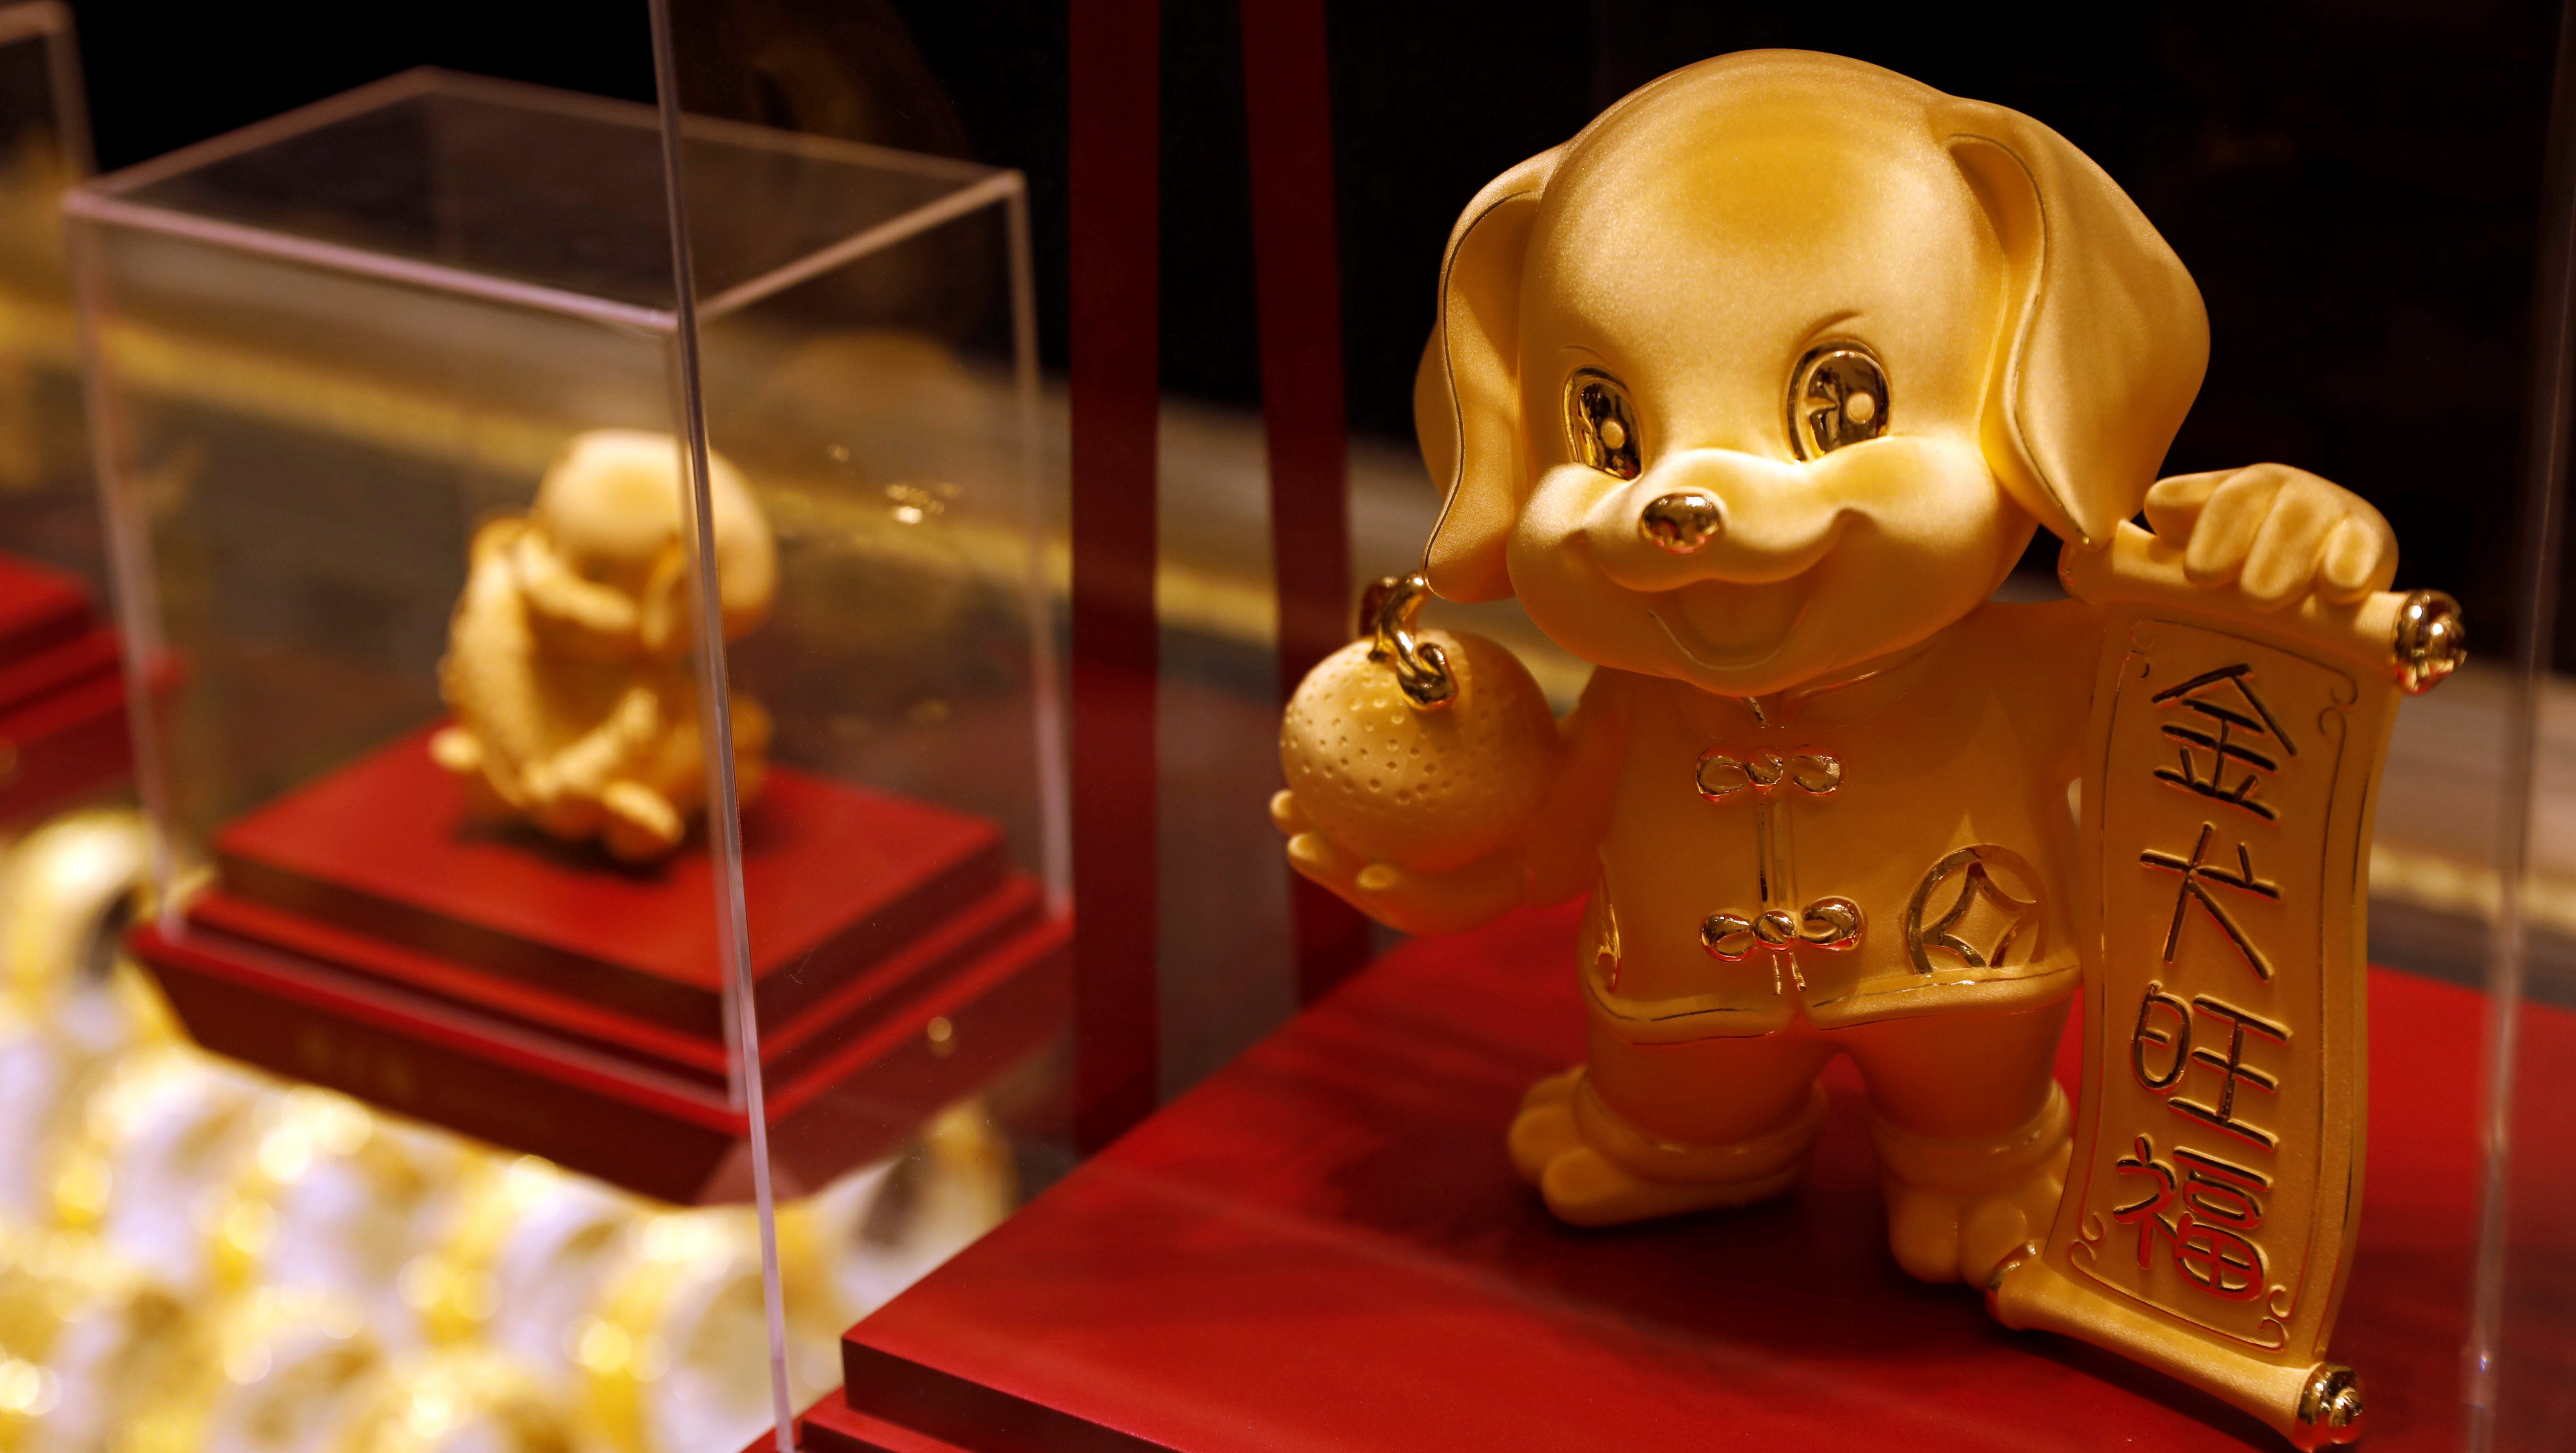 Dog-shaped gold figurines are displayed at Chow Tai Fook Jewellery store ahead of the Lunar Year of the Dog in Hong Kong, China December 14, 2017. REUTERS/Tyrone Siu - RC1E7722AEF0